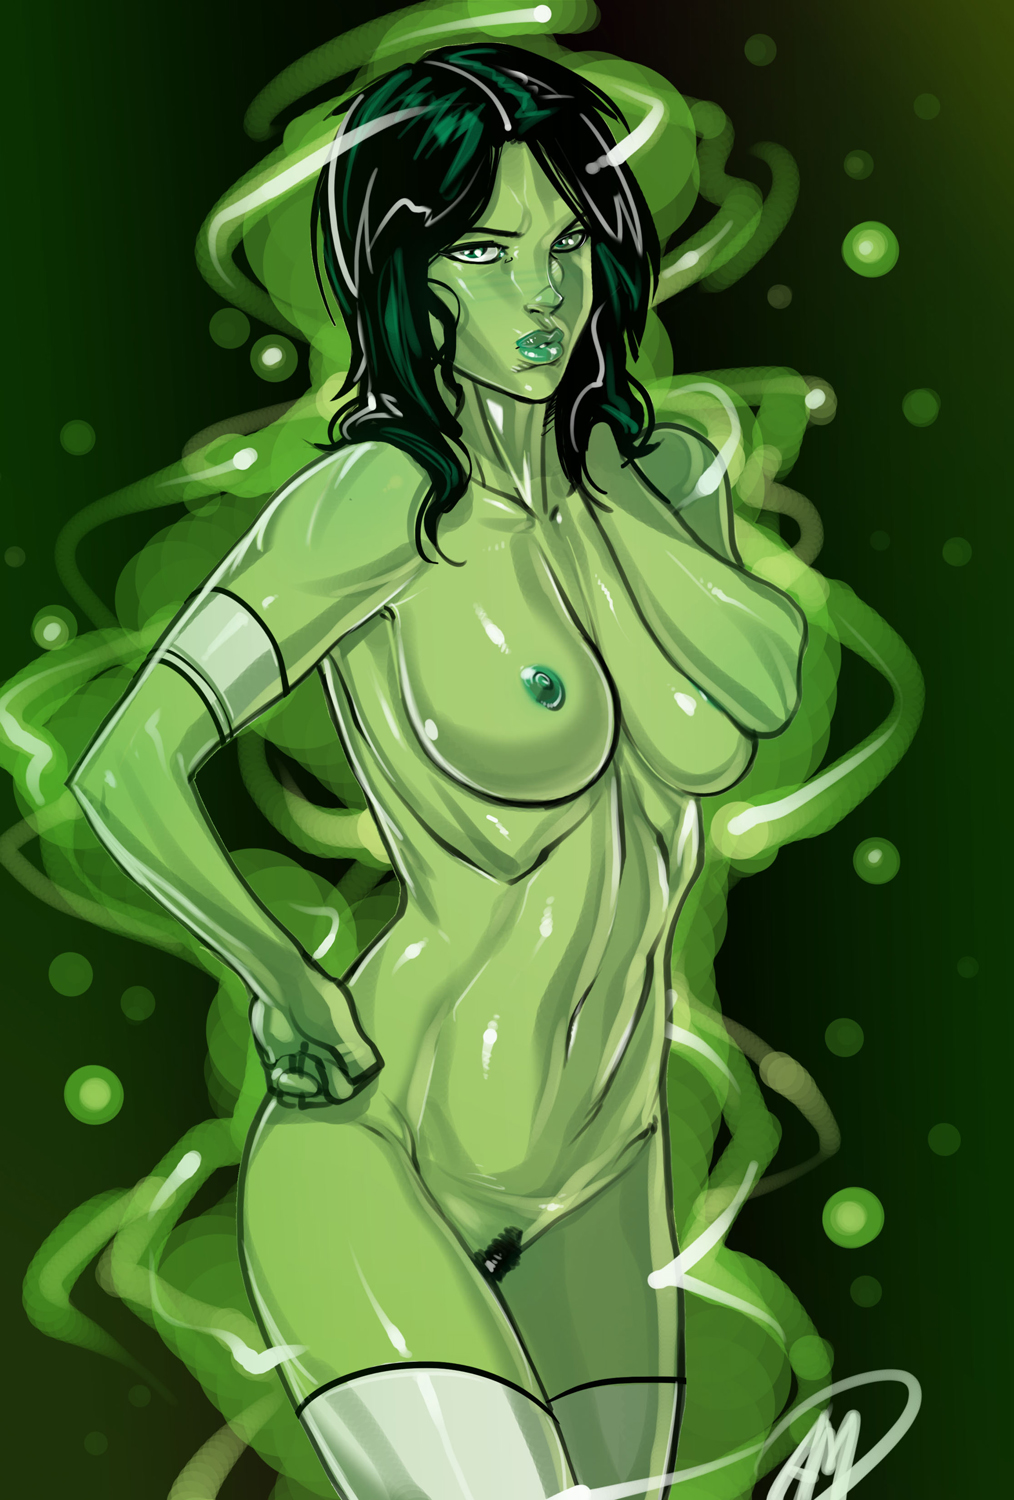 green the animated torrent series lantern Project x love potion disaster android